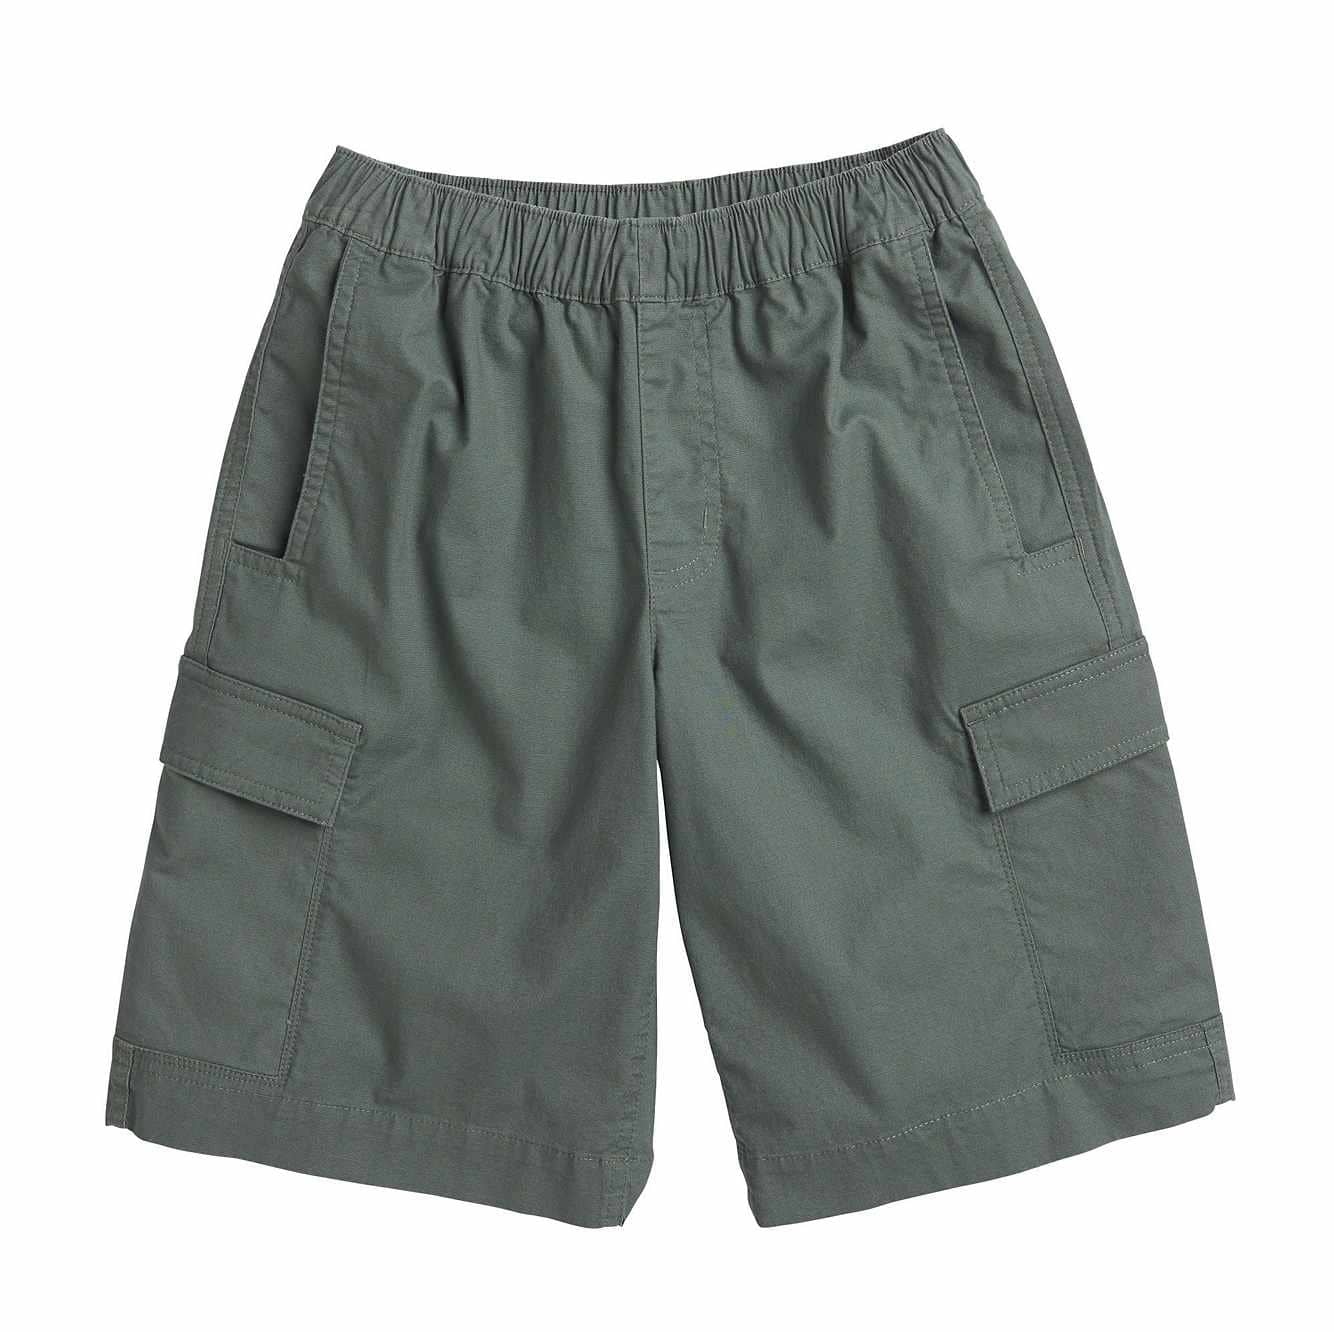 Picture of Ripstop Cargo Short in Thyme